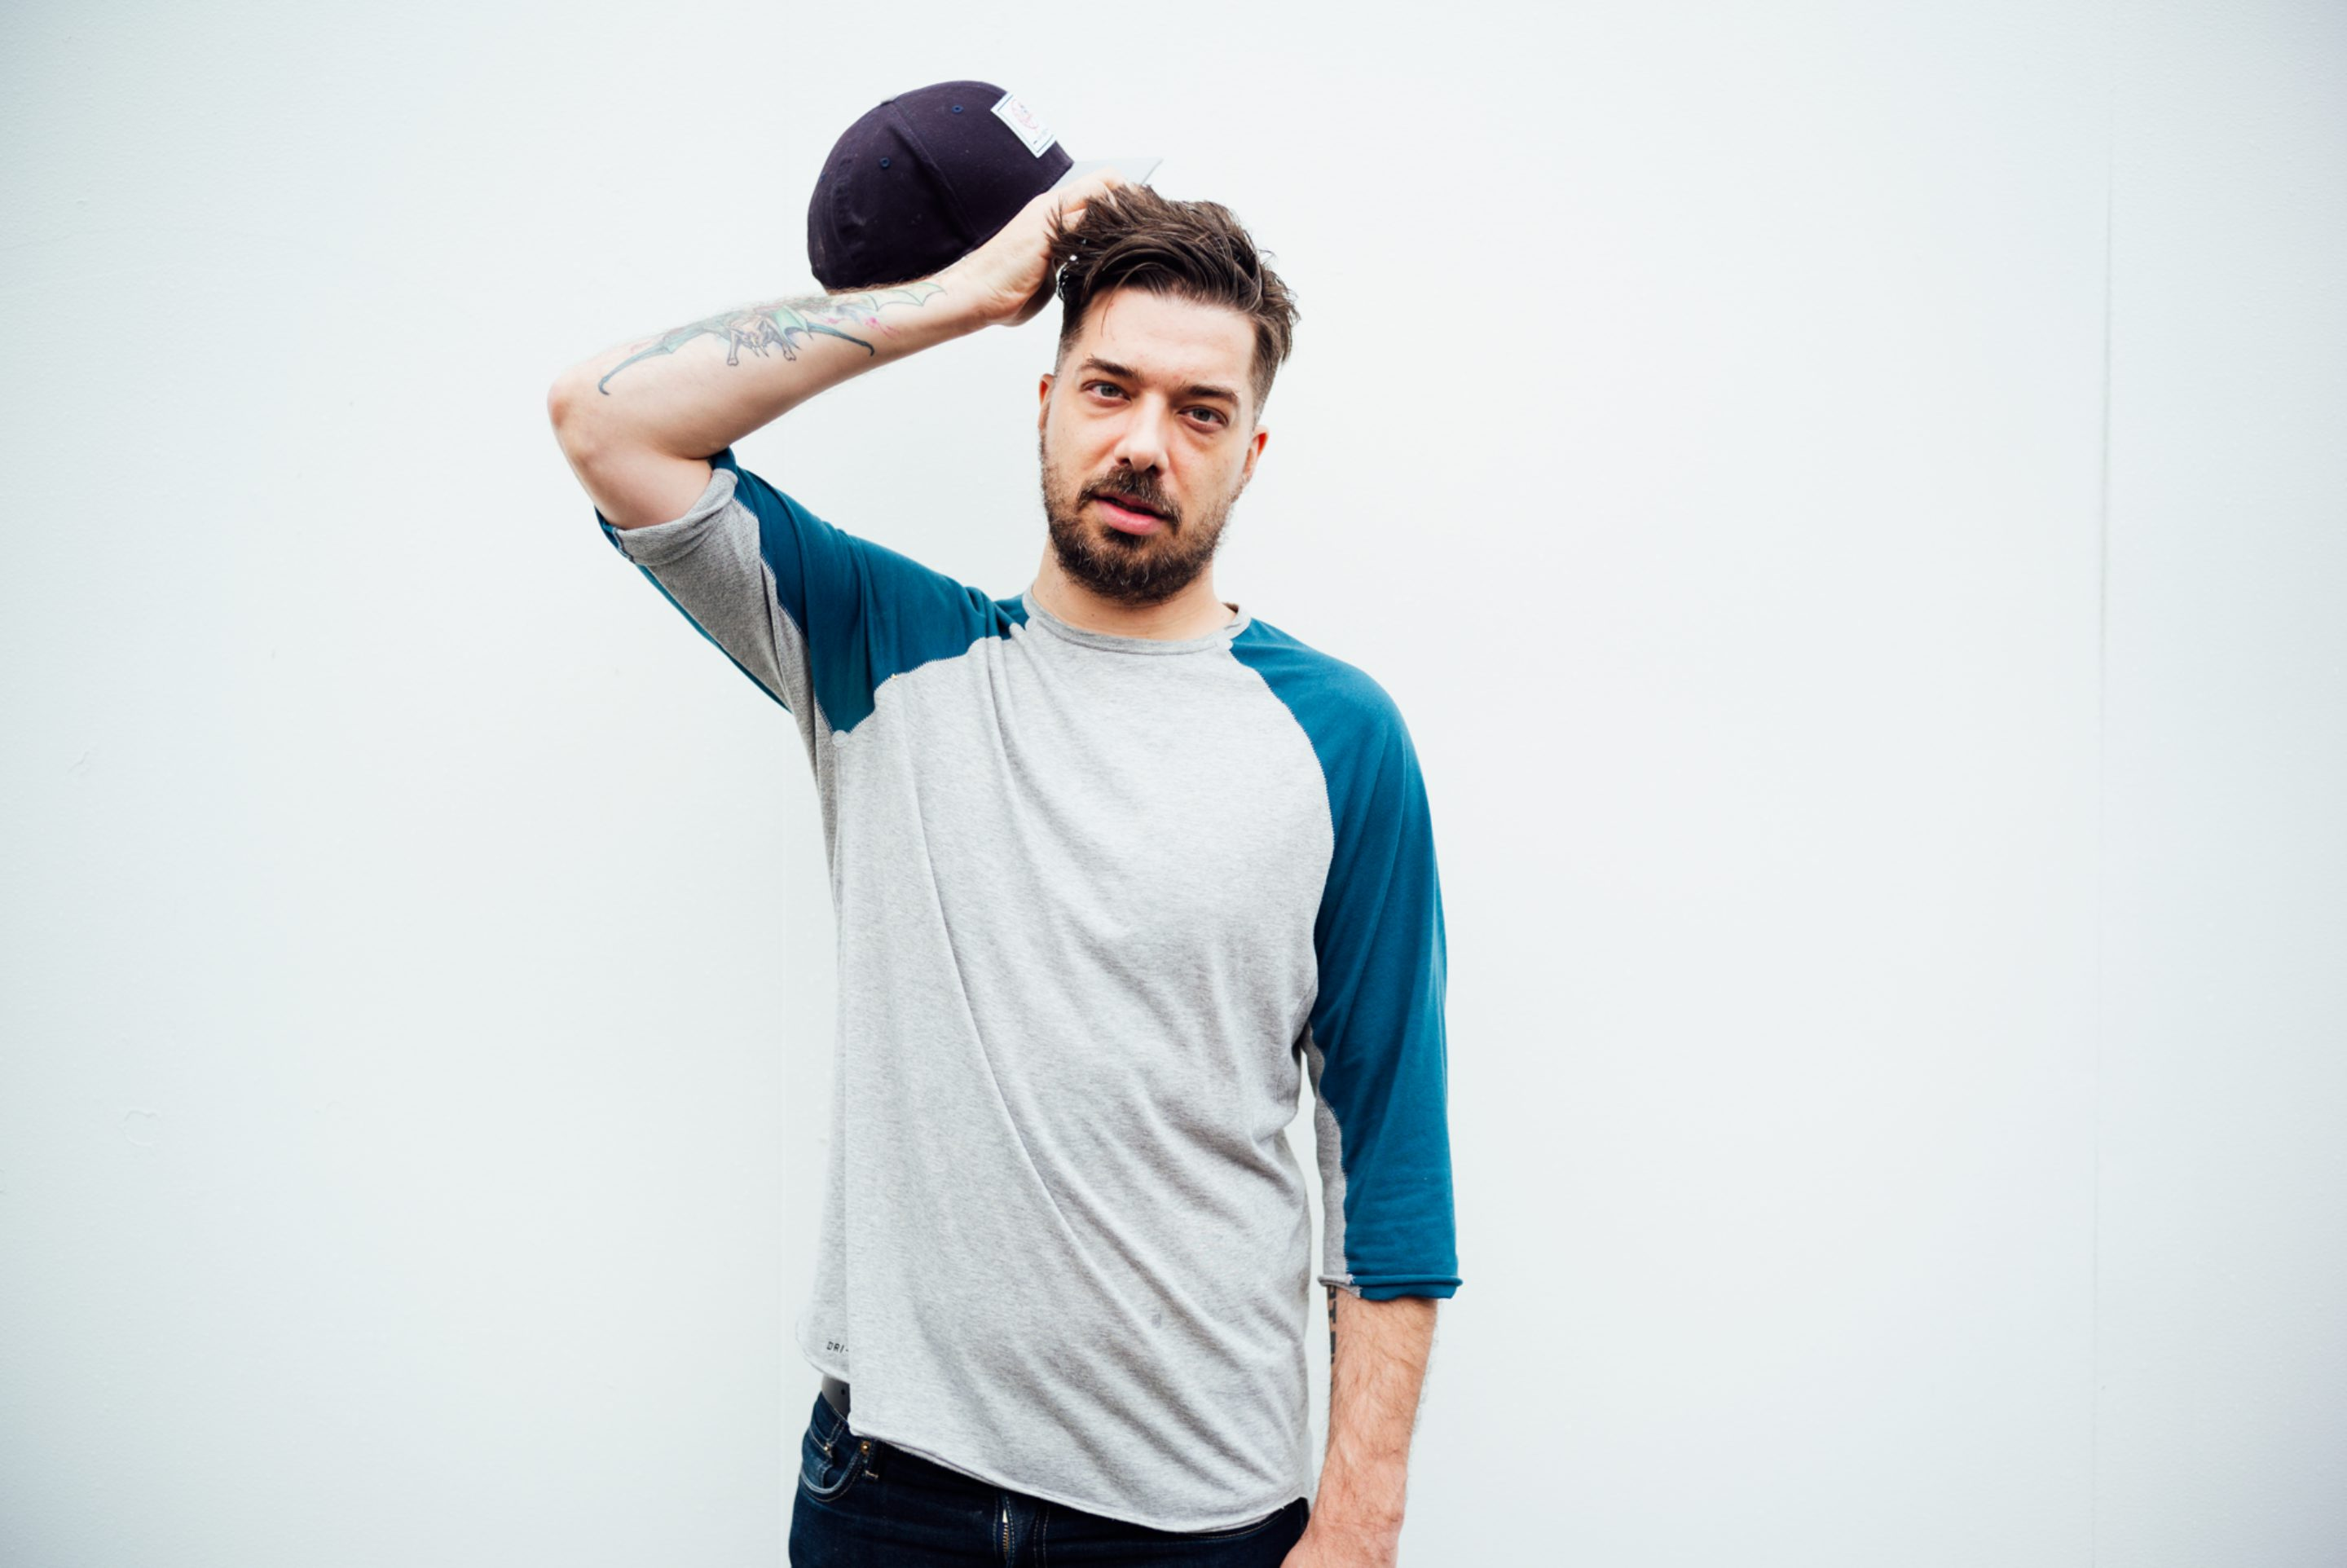 The 43-year old son of father (?) and mother(?) Aesop Rock in 2020 photo. Aesop Rock earned a million dollar salary - leaving the net worth at million in 2020